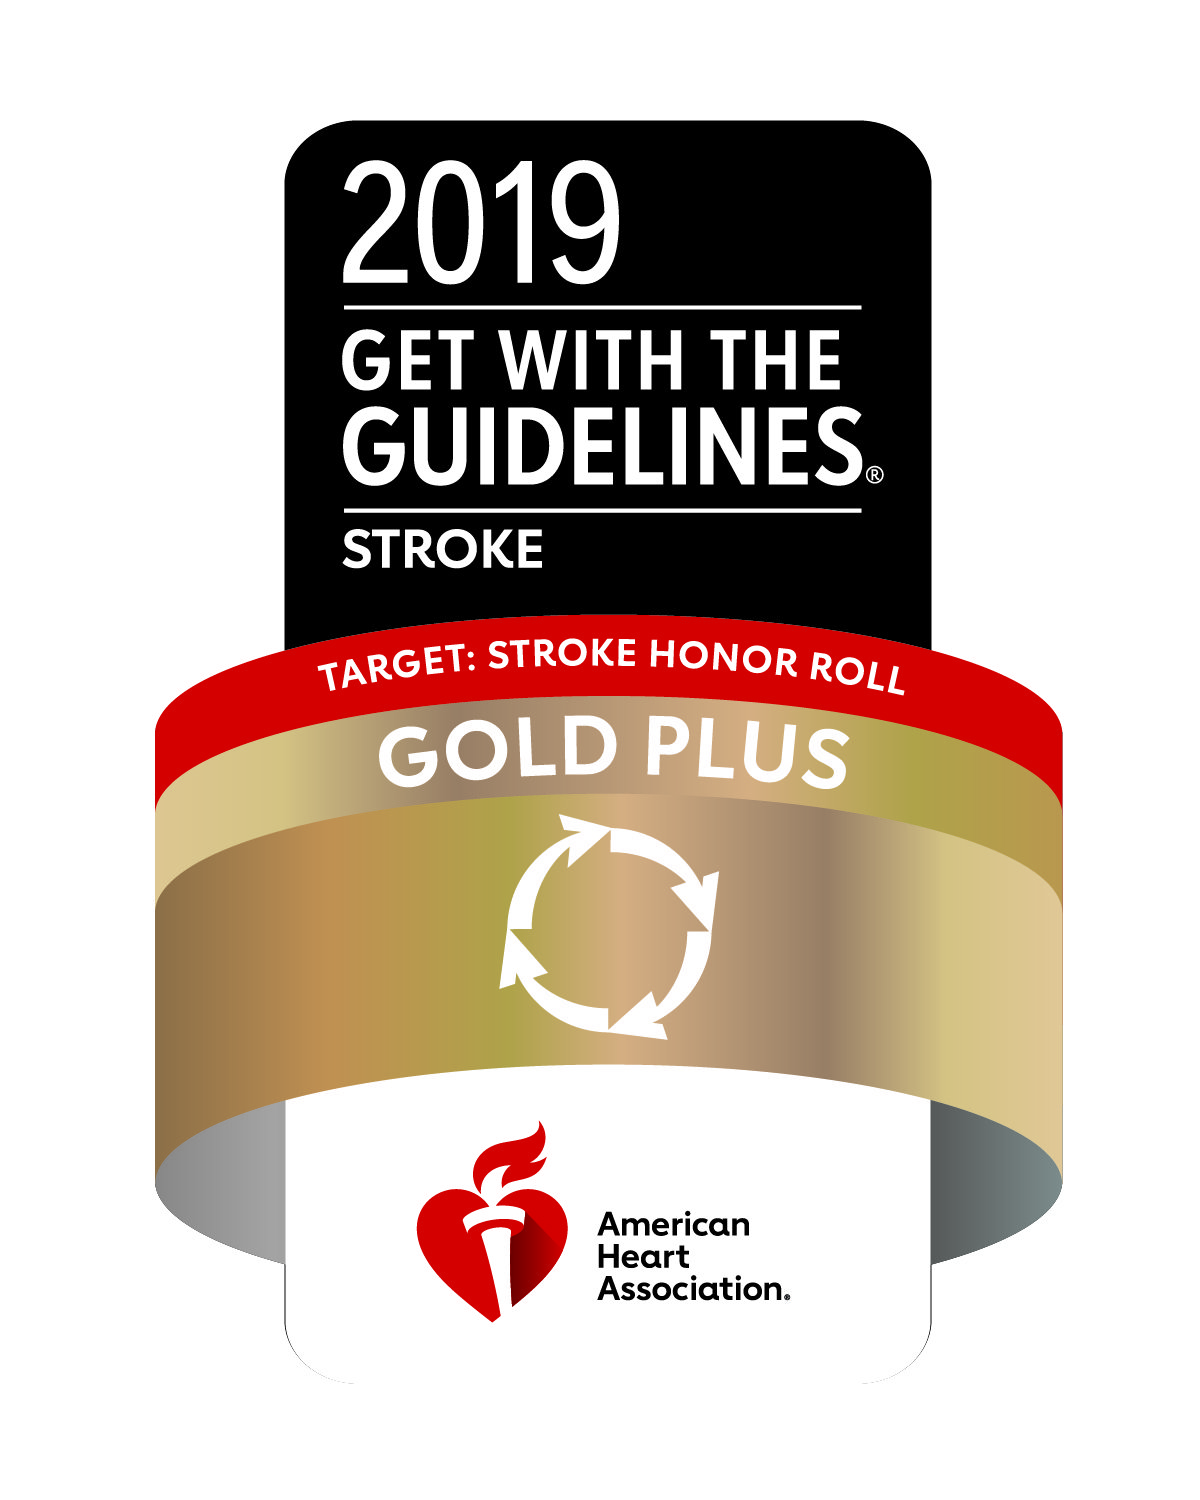 2019 Get with the guidelines target stroke honor roll gold plus logo